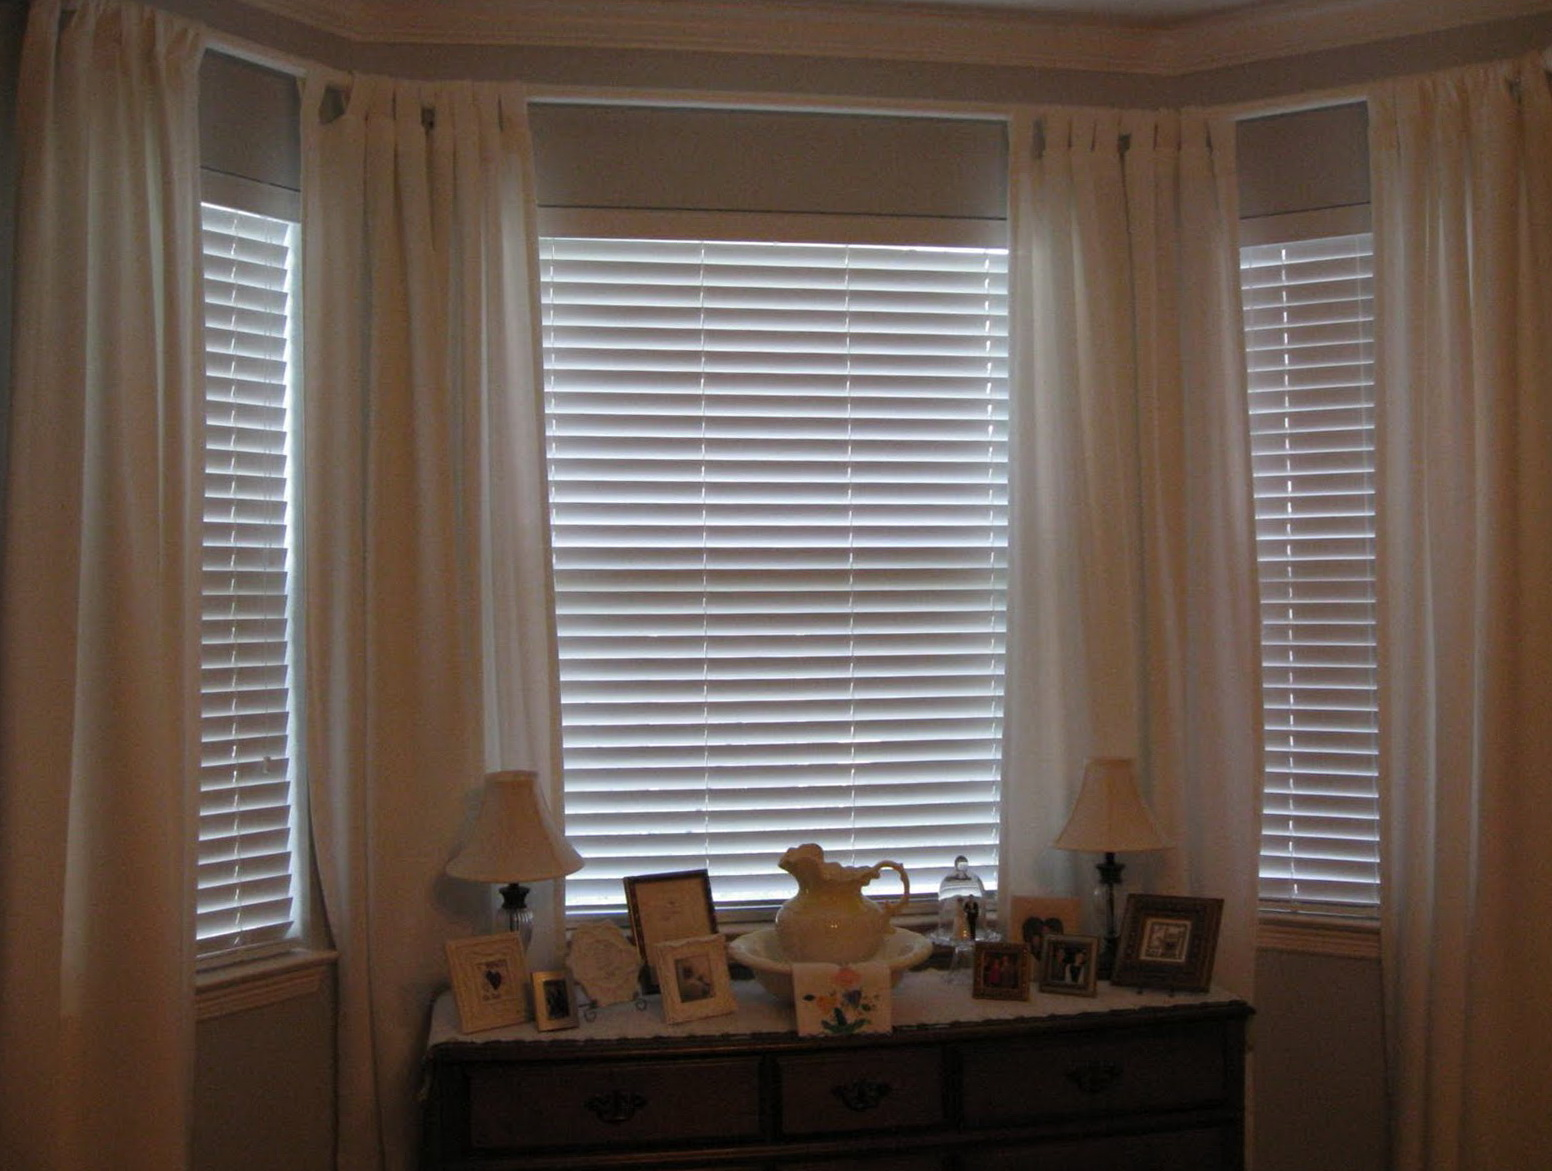 Curtains on blinds home the honoroak Curtains and blinds